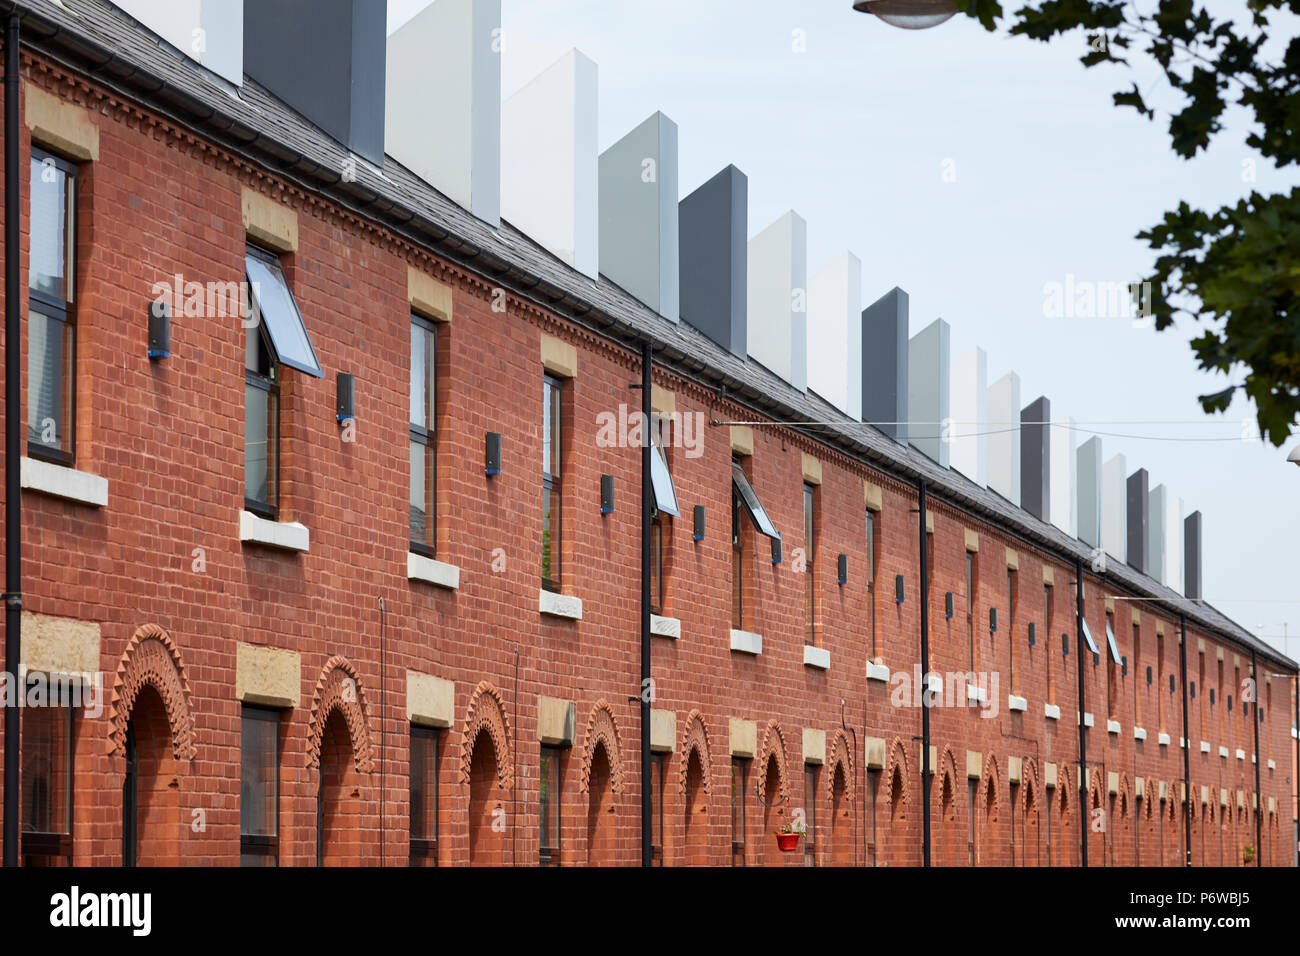 Chimney Pot Park is an urban community of upside down houses in Salford, Manchester. refurbished terraced houses in langworthy by Urbansplash - Stock Image